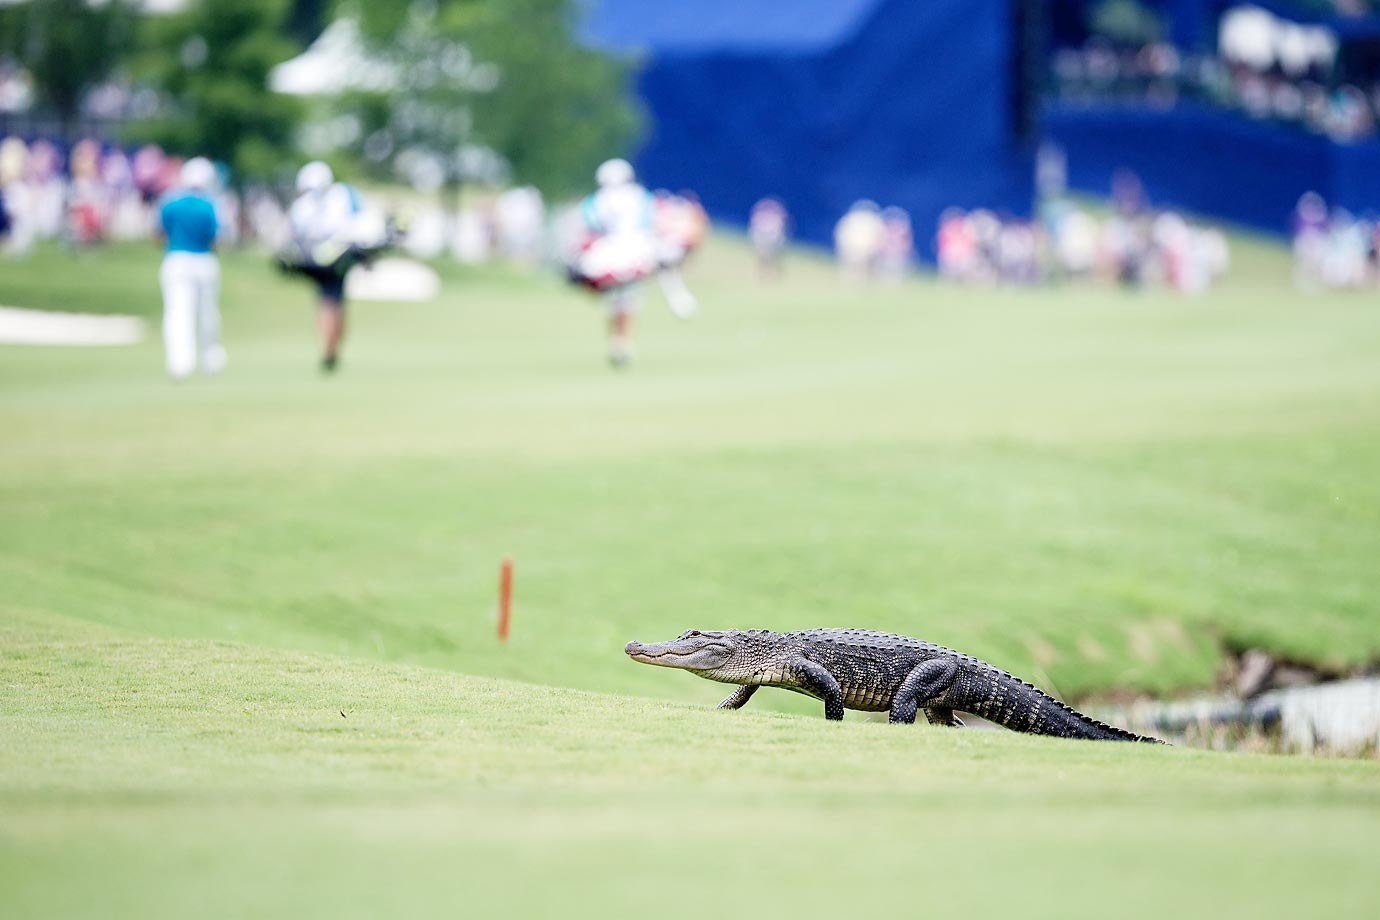 An alligator crosses the 18th fairway at the Zurich Classic in Avondale, La.